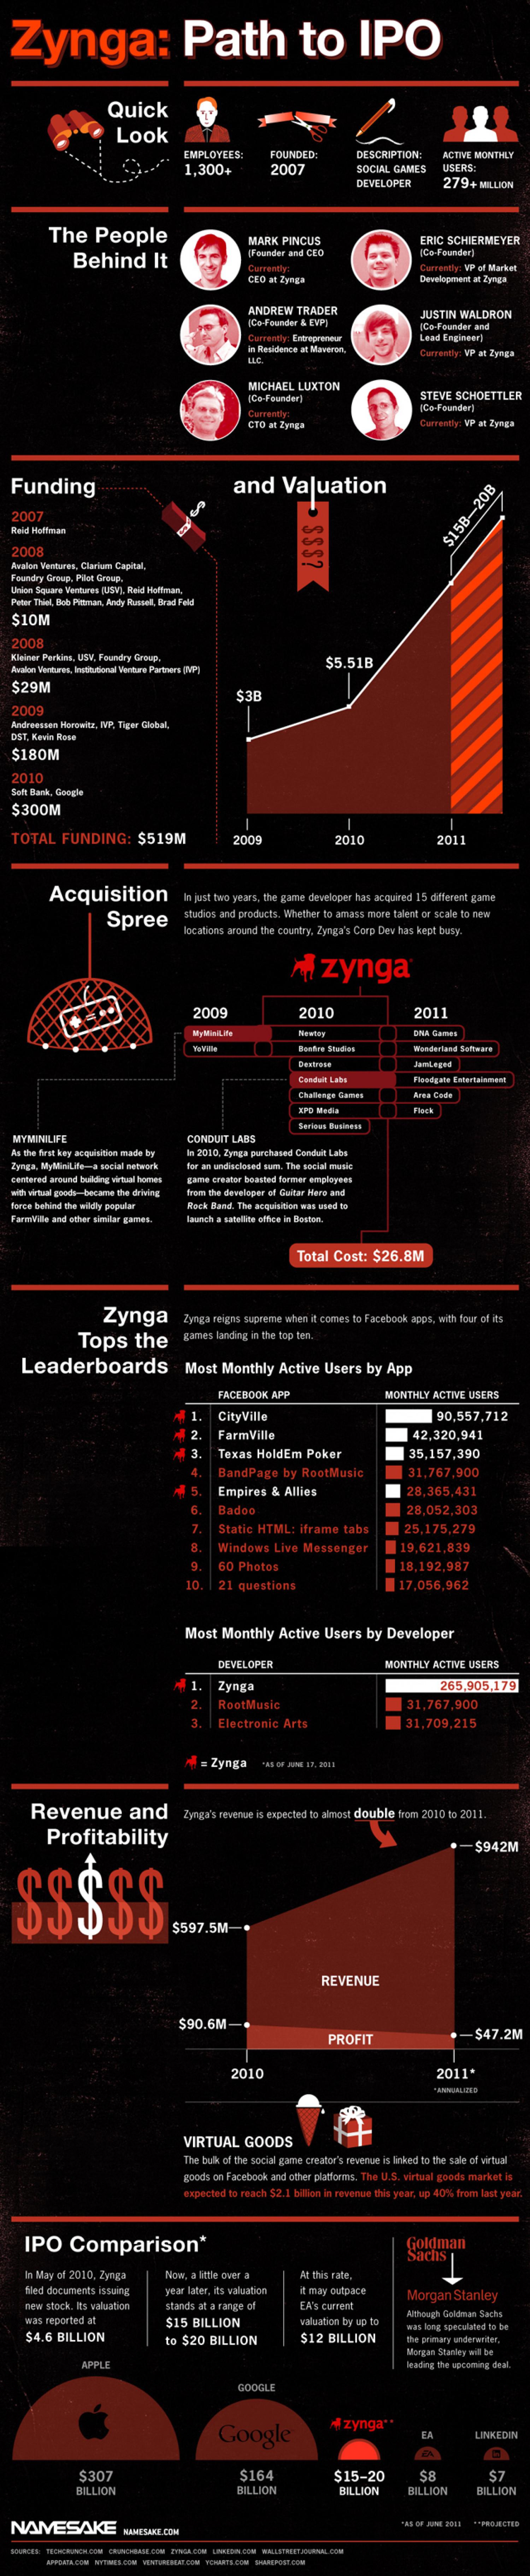 Zynga's Journey From Founding to IPO Infographic